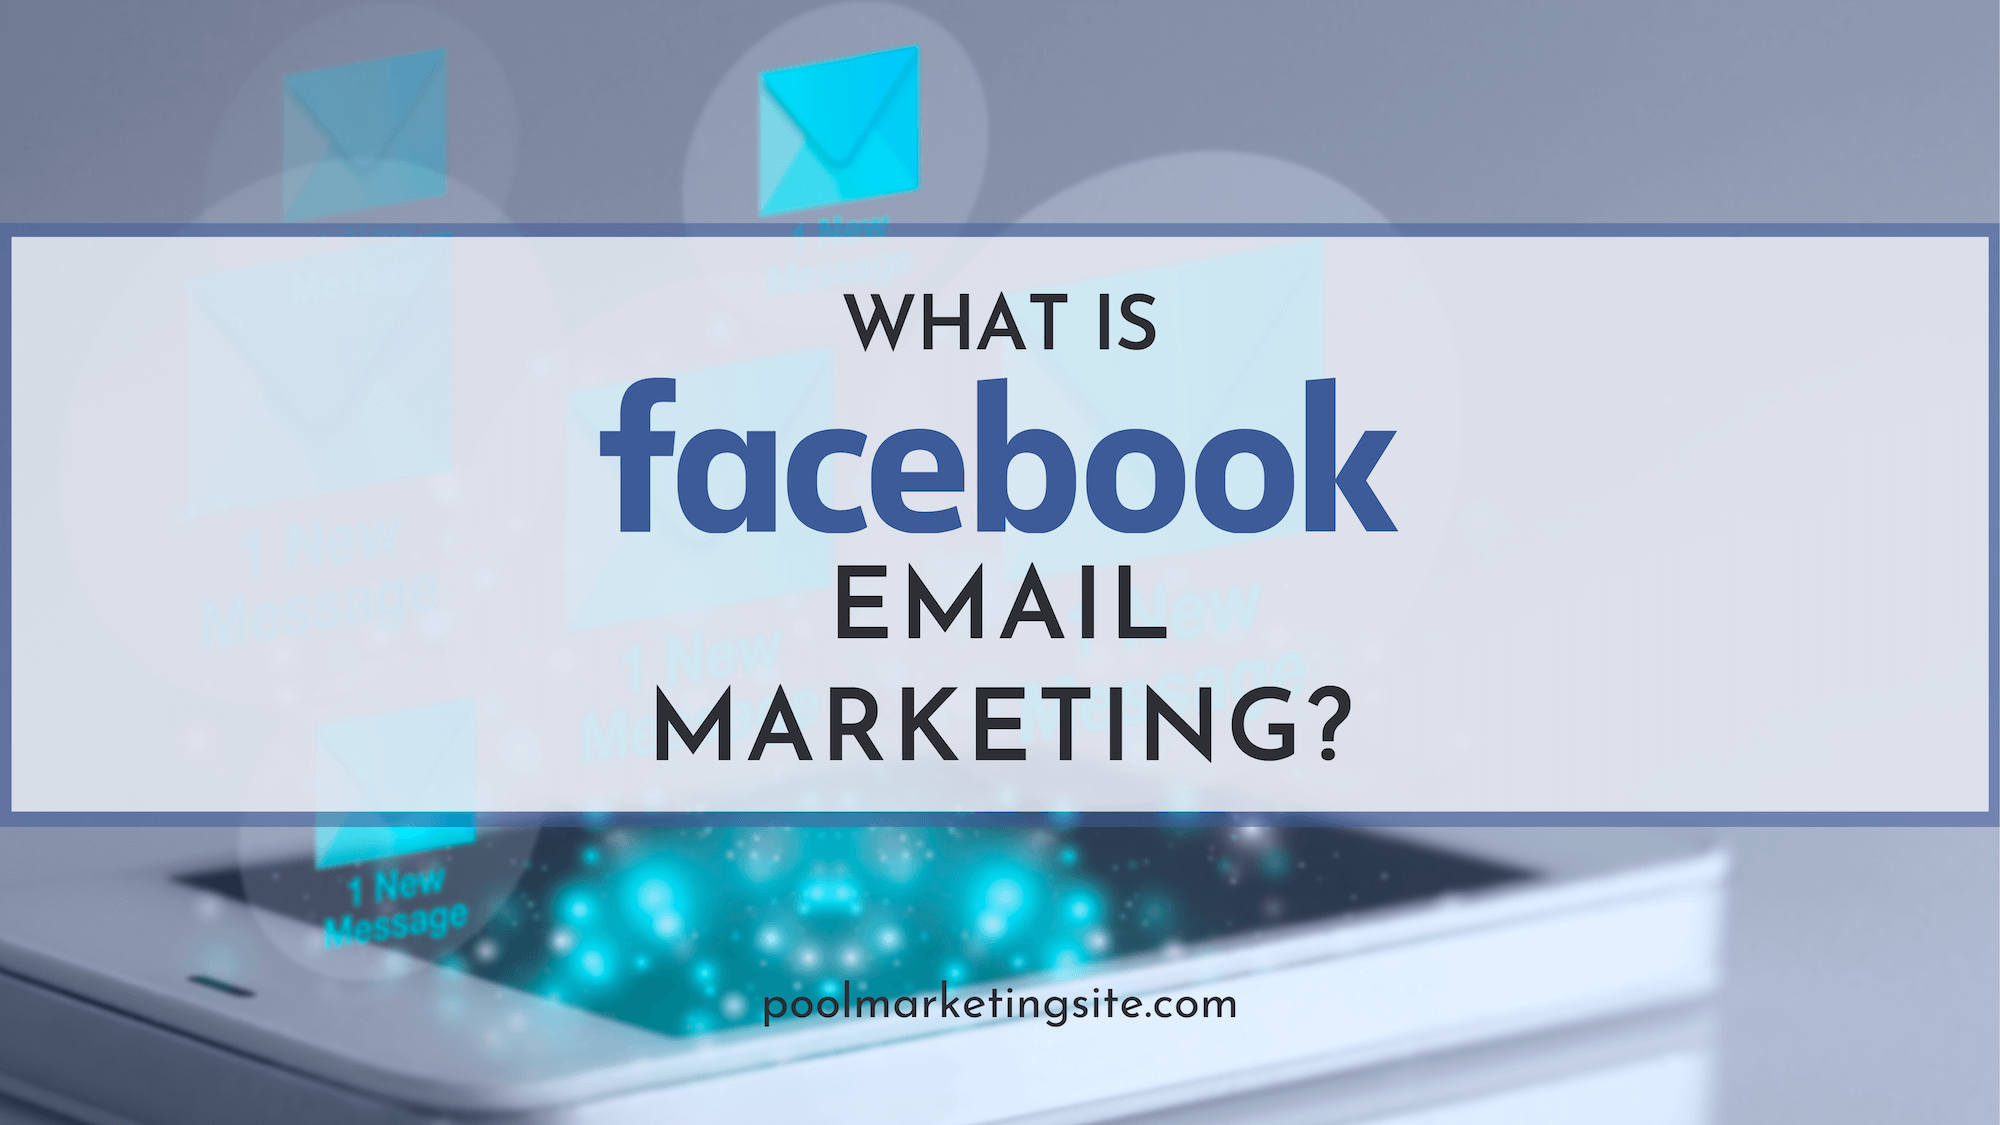 What is Facebook Email Marketing?